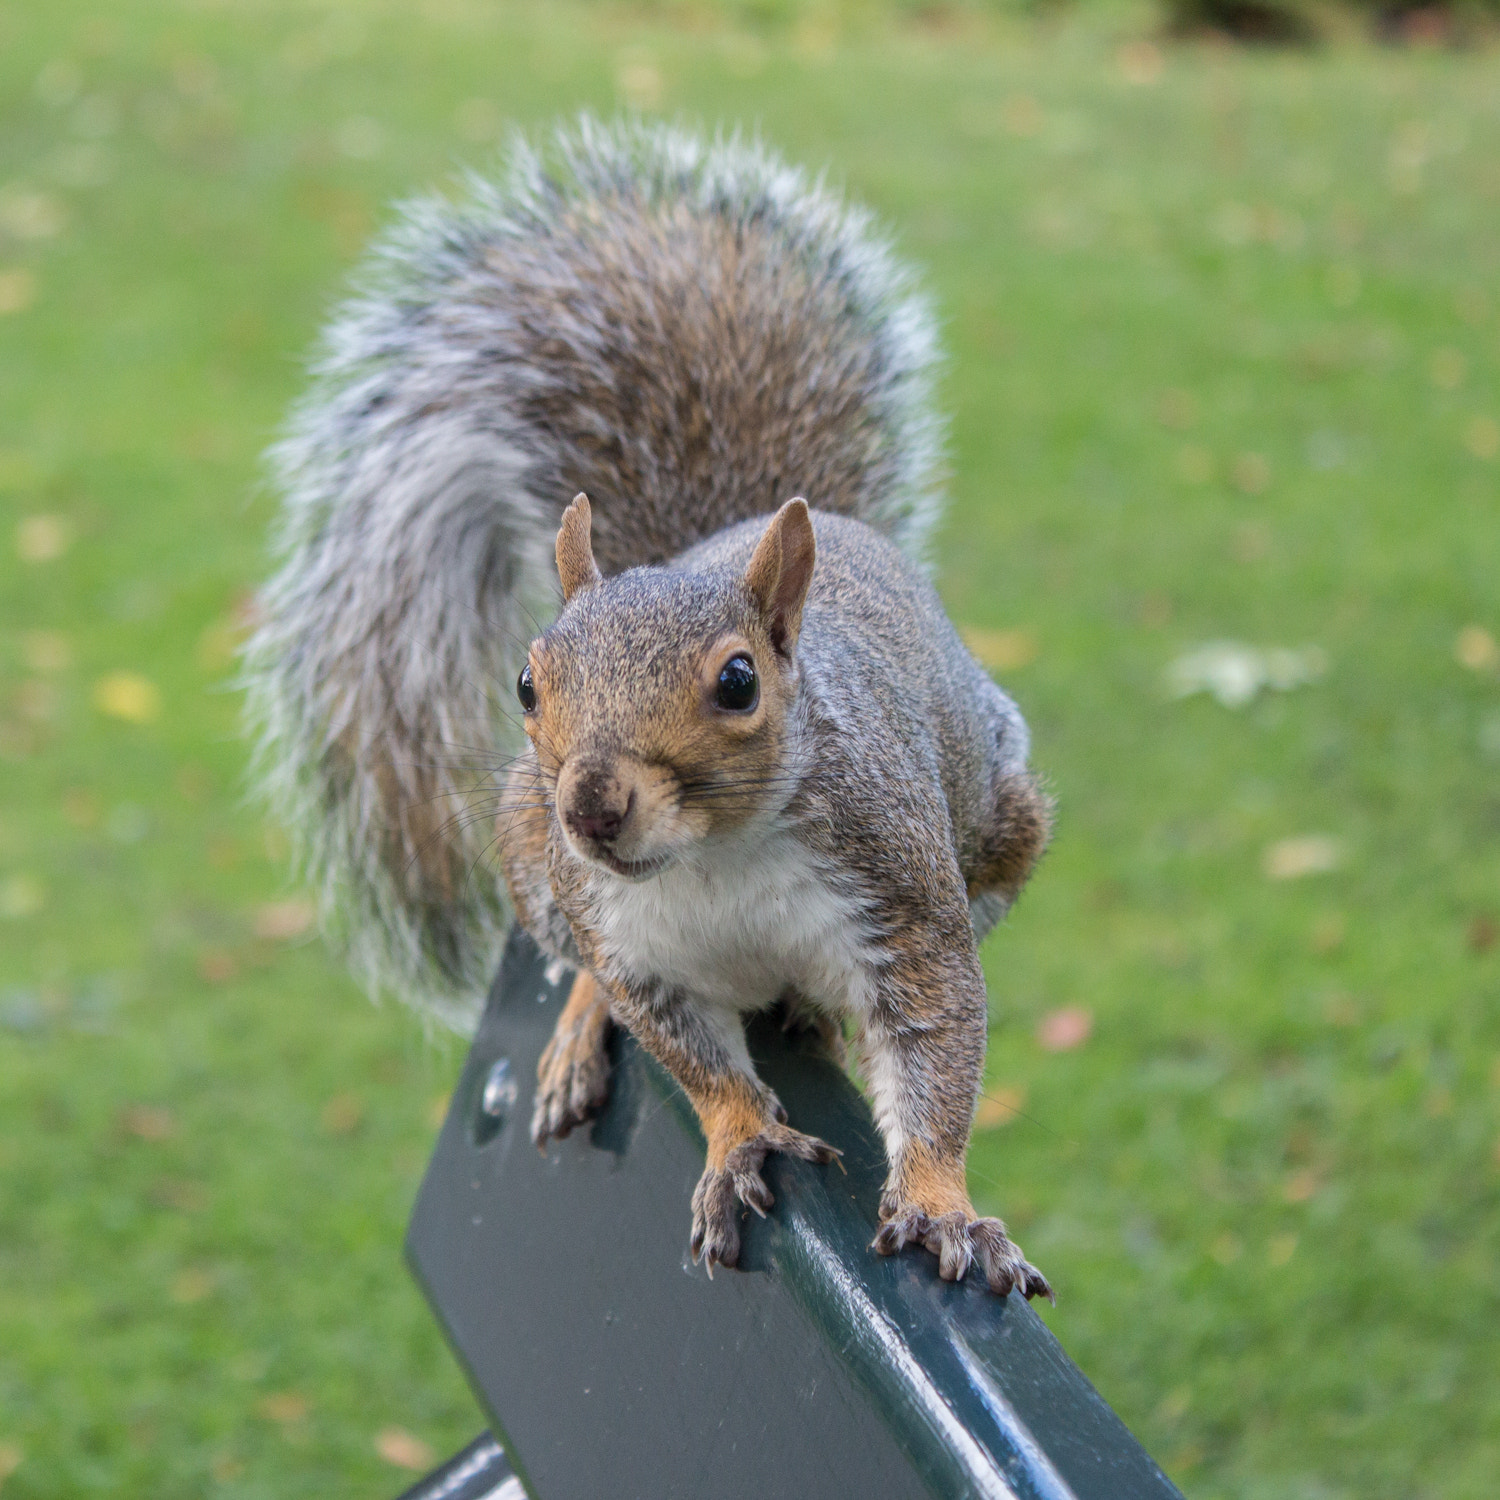 Photograph Squirrel by Steve Hall on 500px